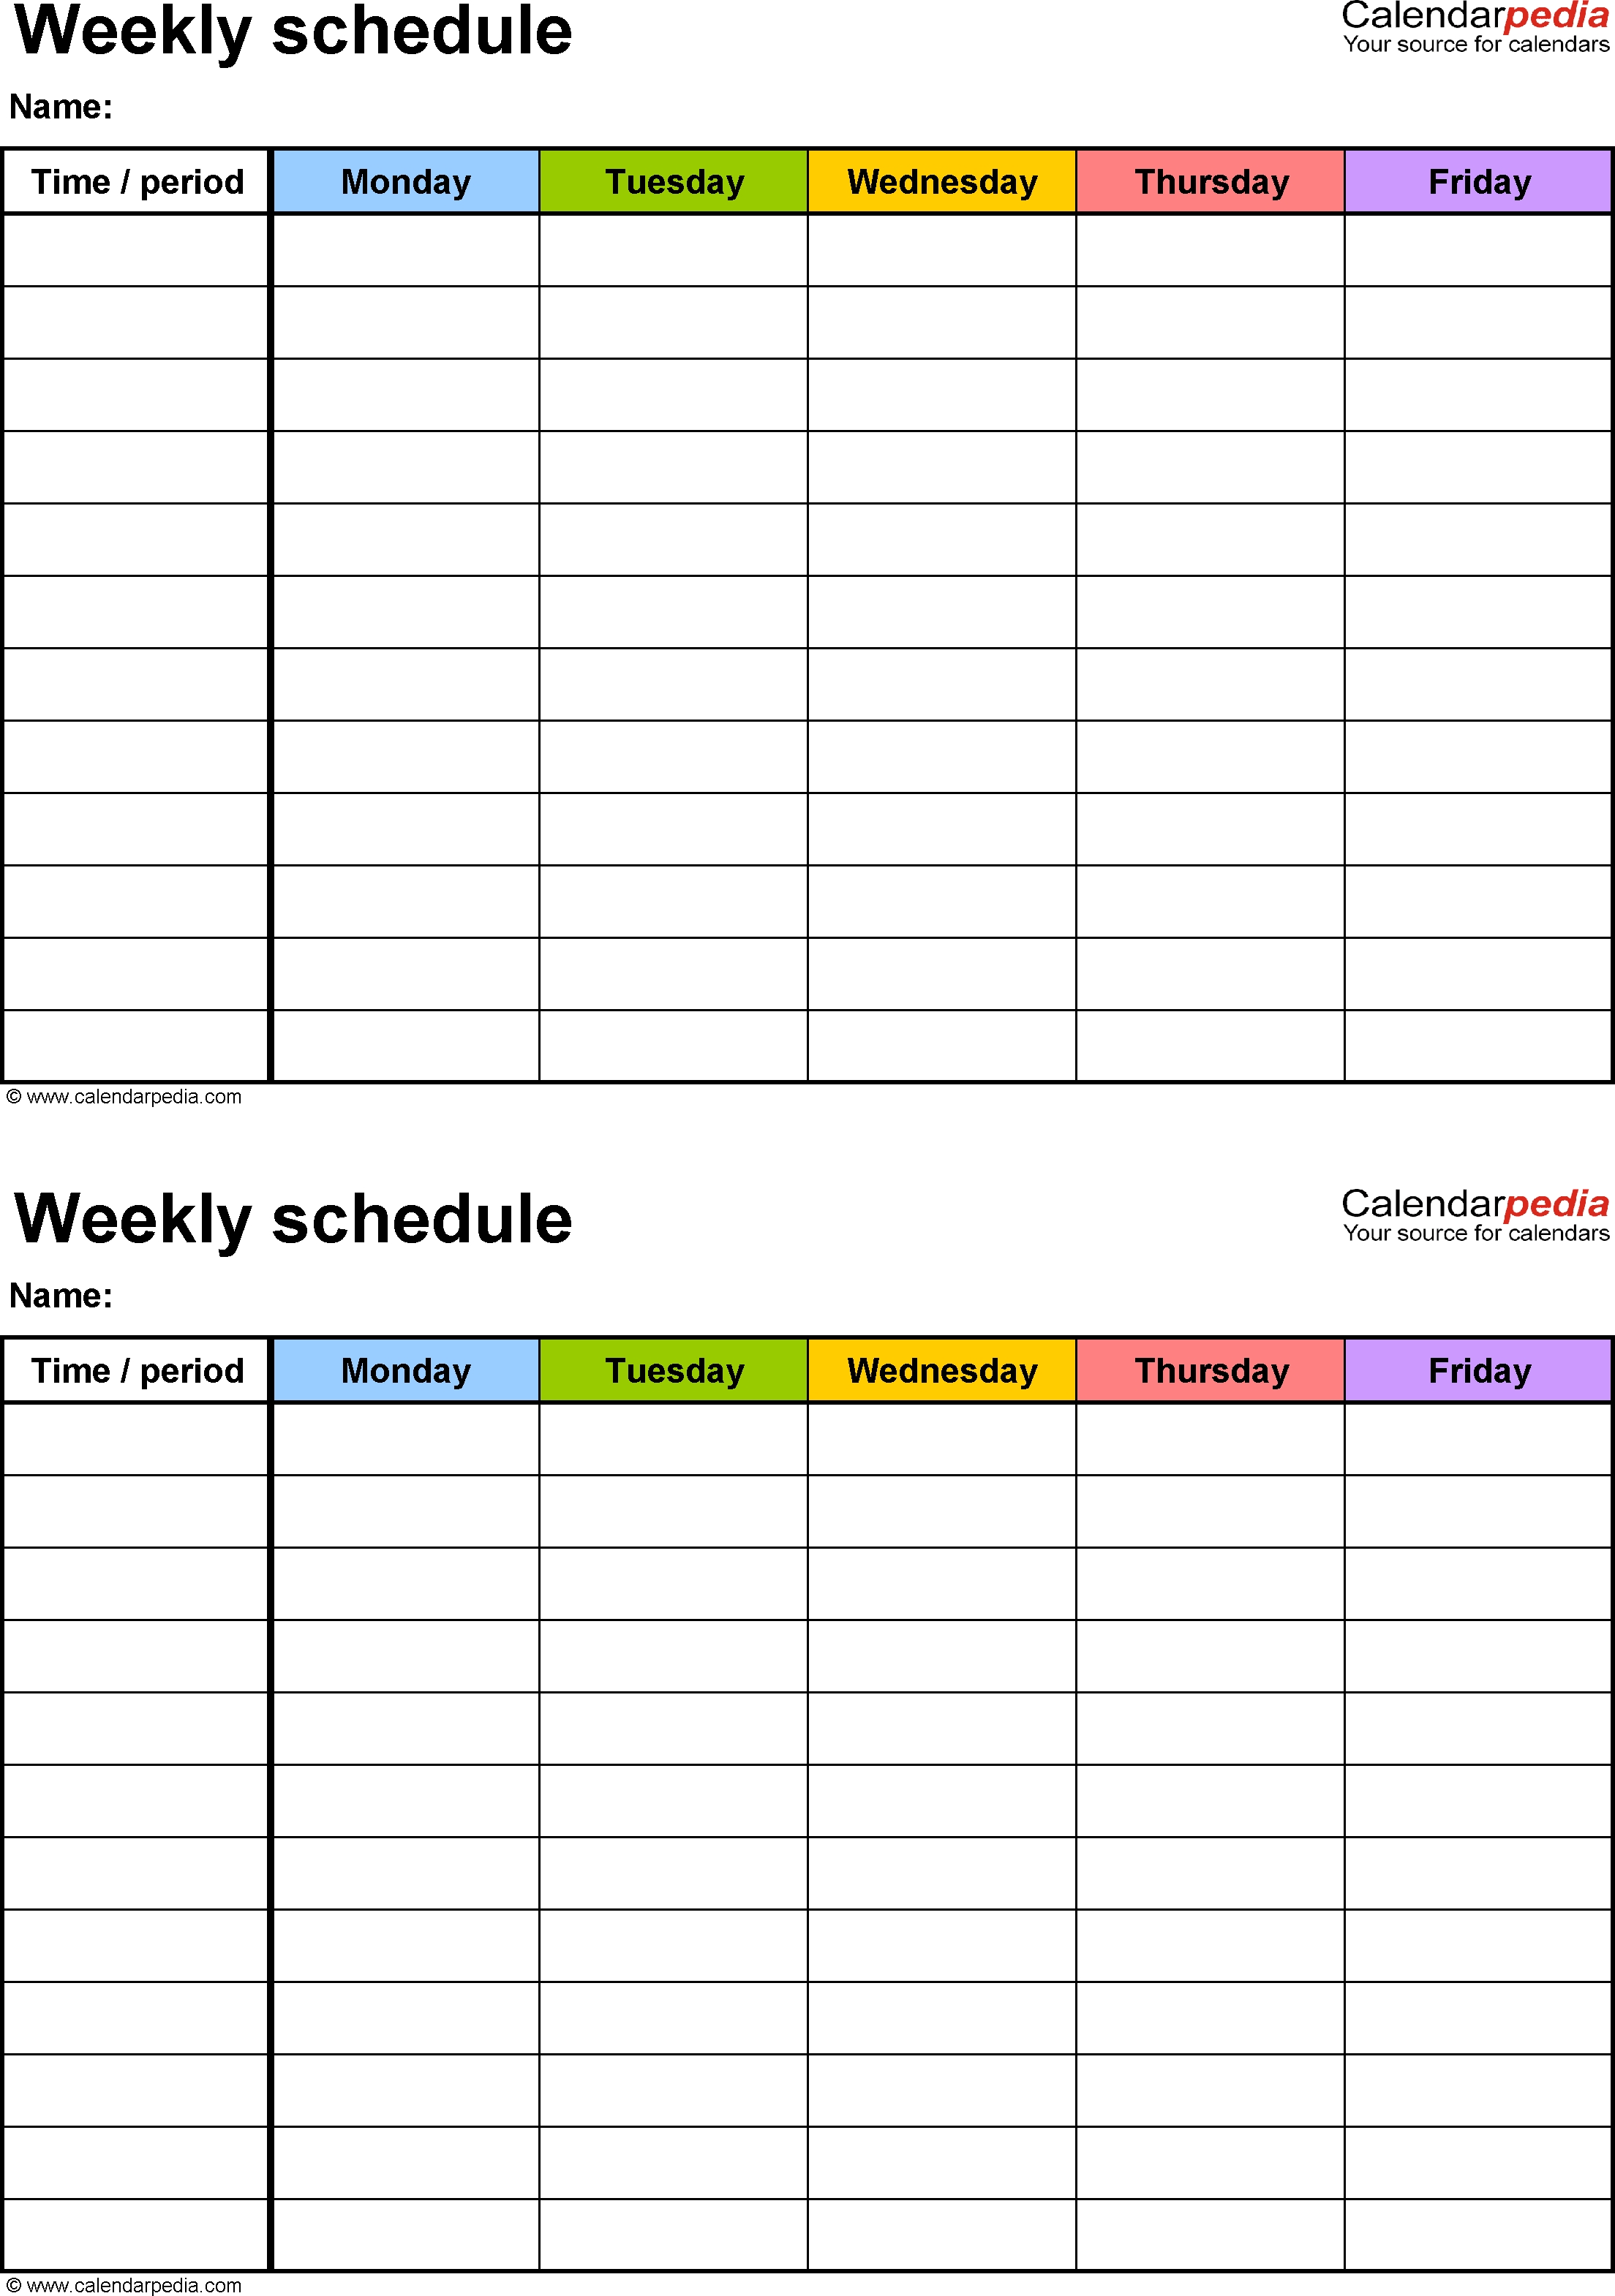 Weekly Schedule Template For Excel Version 3: 2 Schedules On One for Monday To Friday Schedule Template